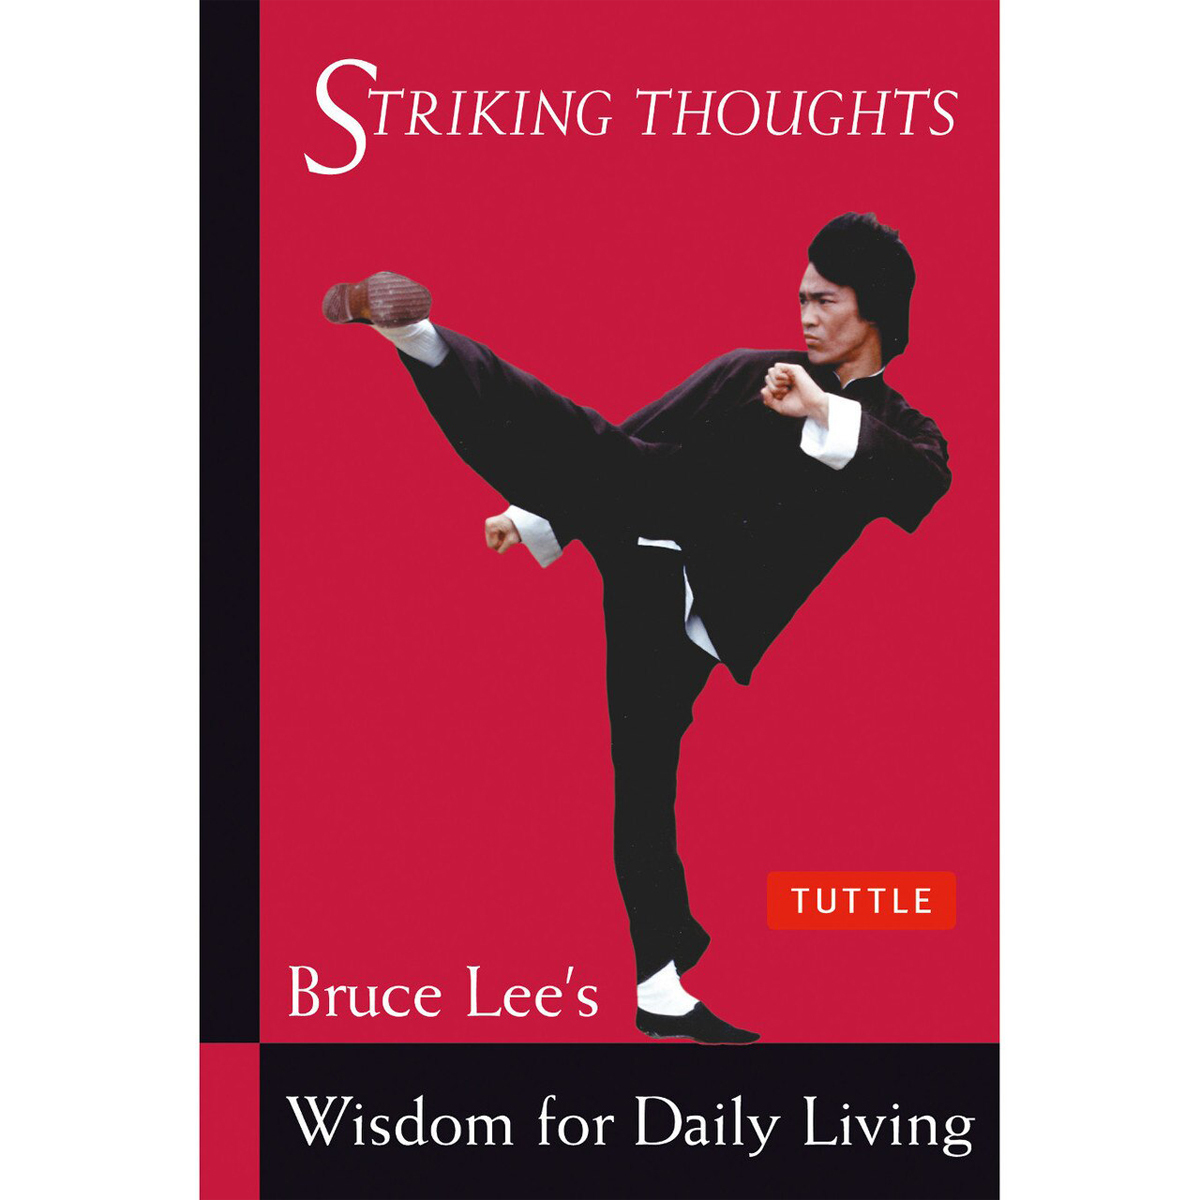 Bruce Lee Striking Thoughts Book